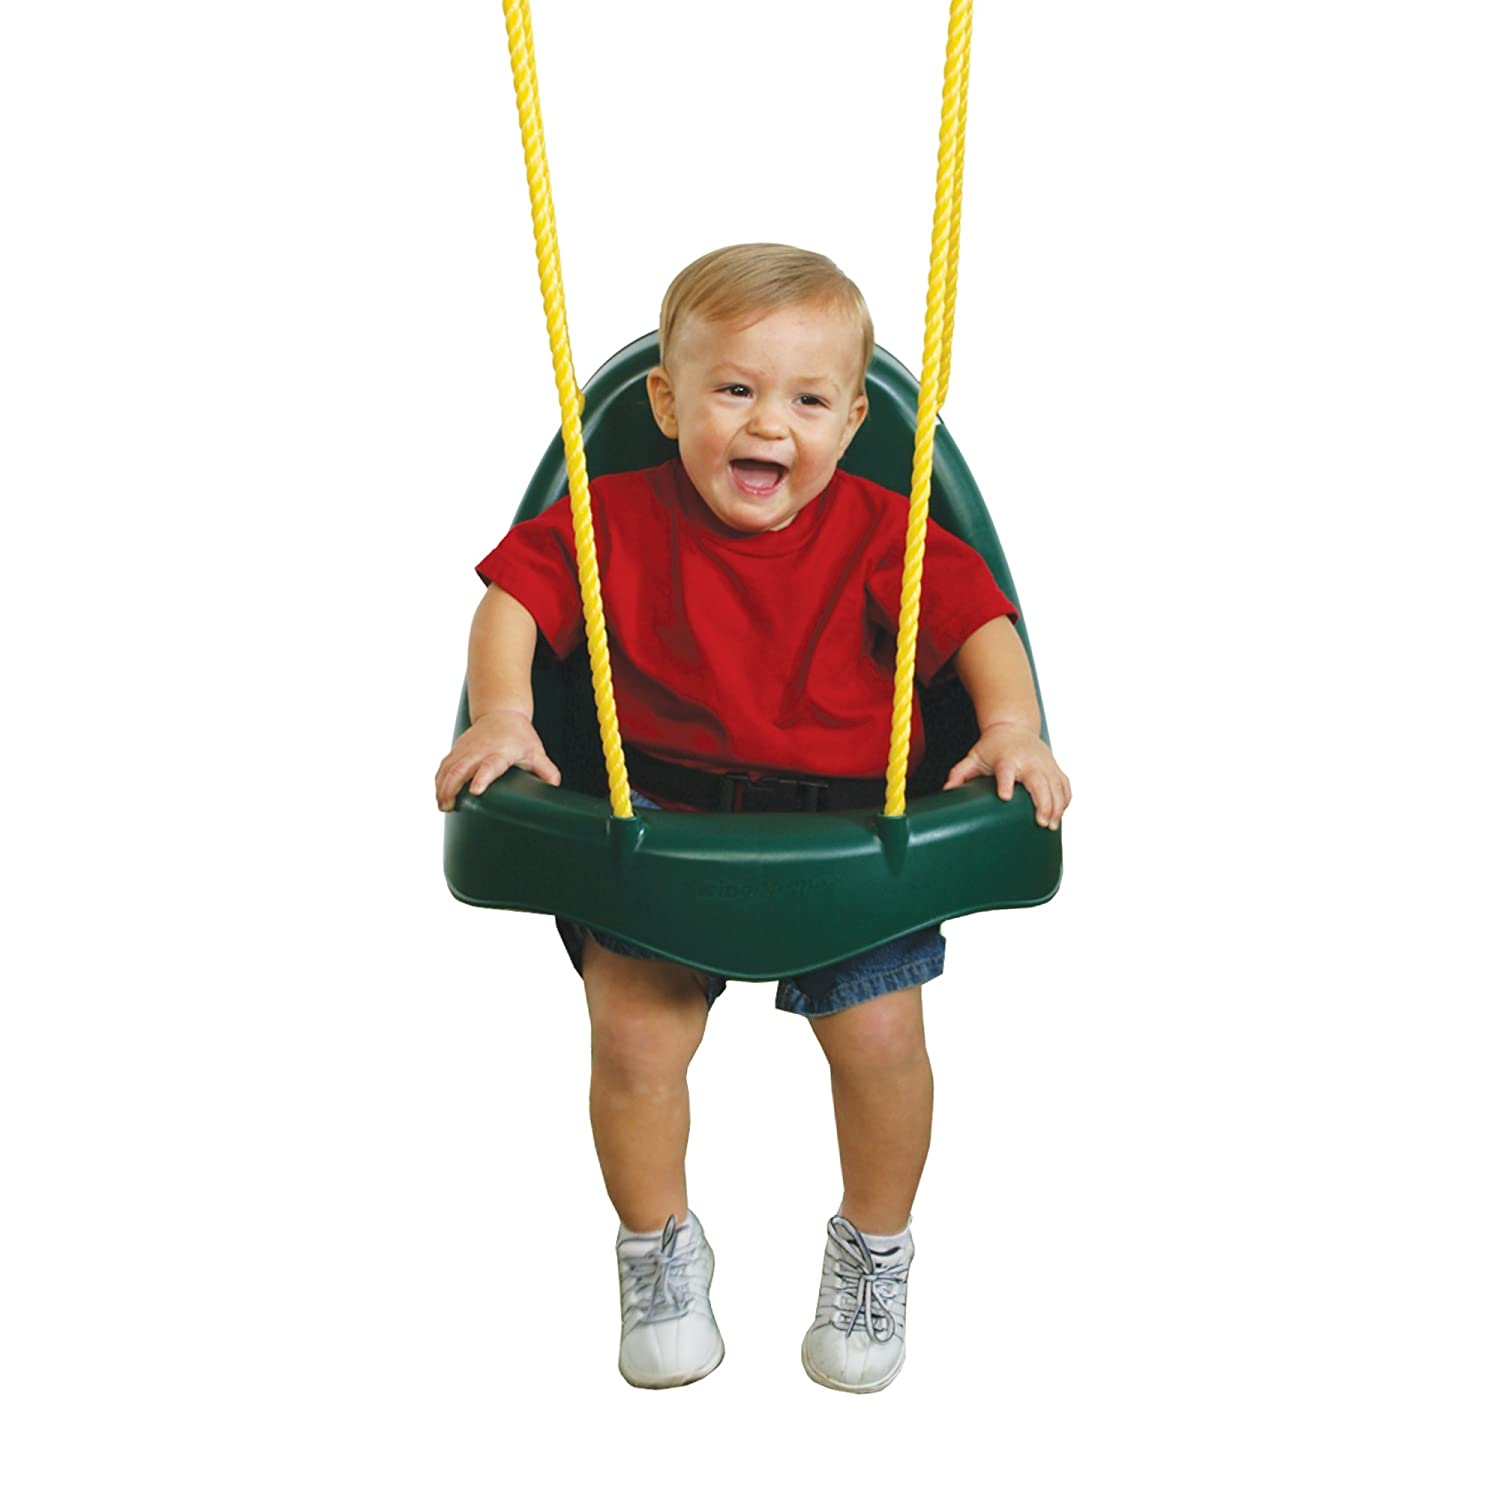 Amazon Child Swing Toys & Games